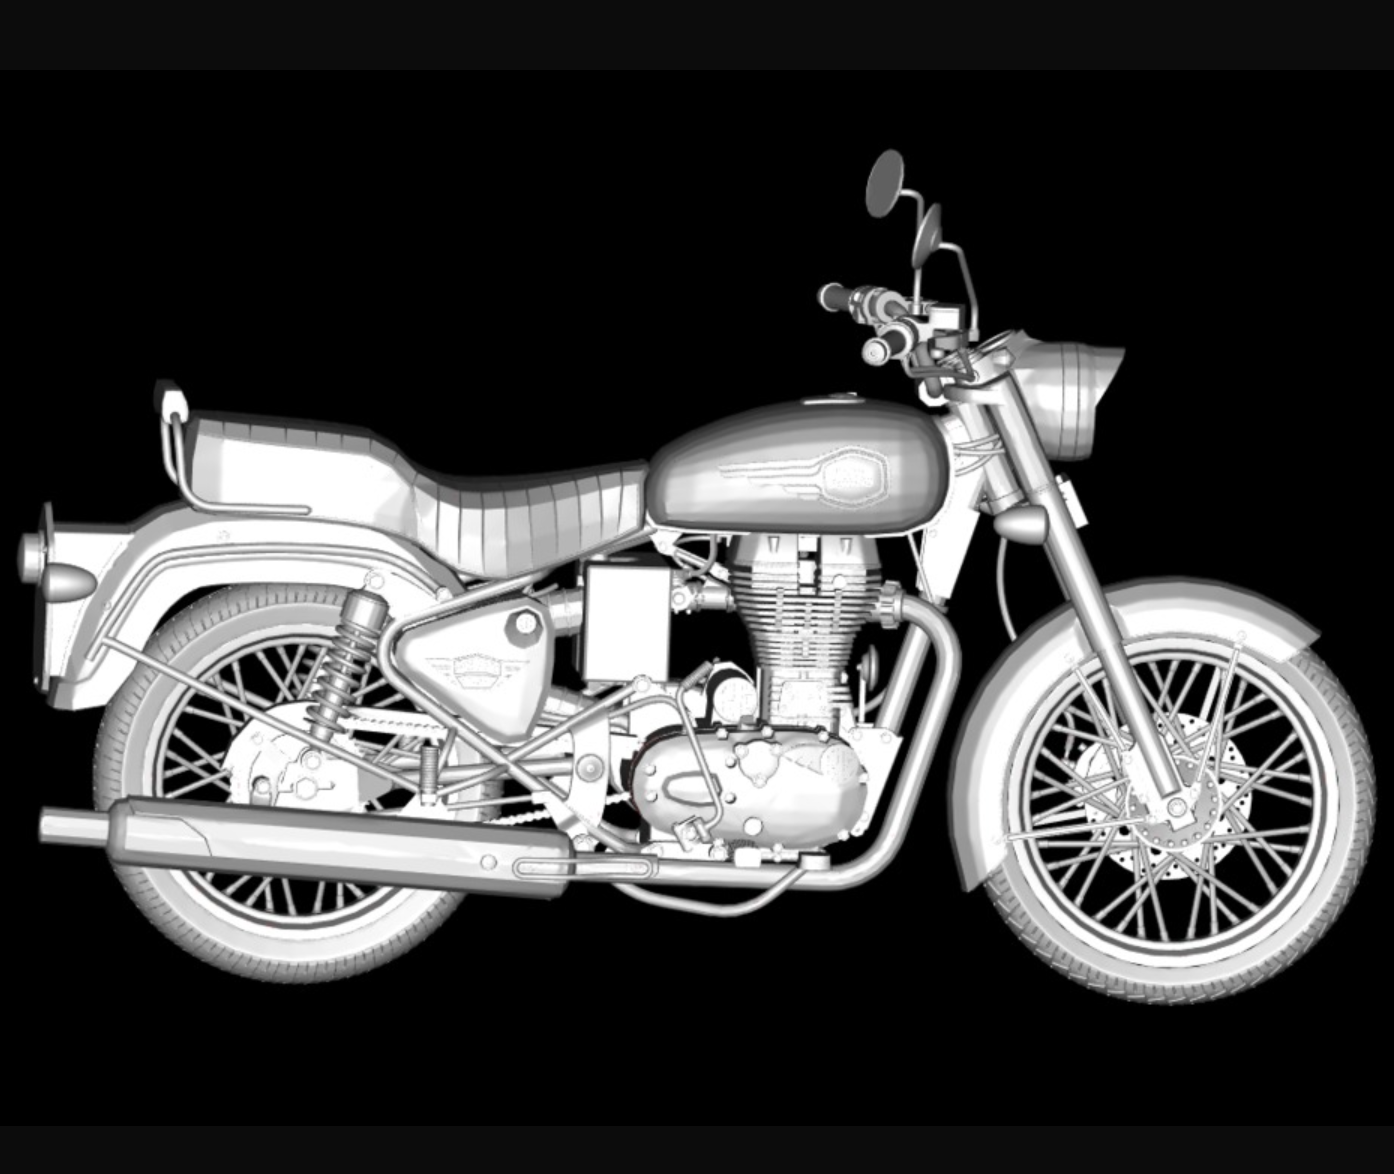 Capture d'écran 2017-11-14 à 17.03.34.png Download free STL file Motorcycle Royal Enfield Bullet 500 2016 • 3D printing object, michaeledi